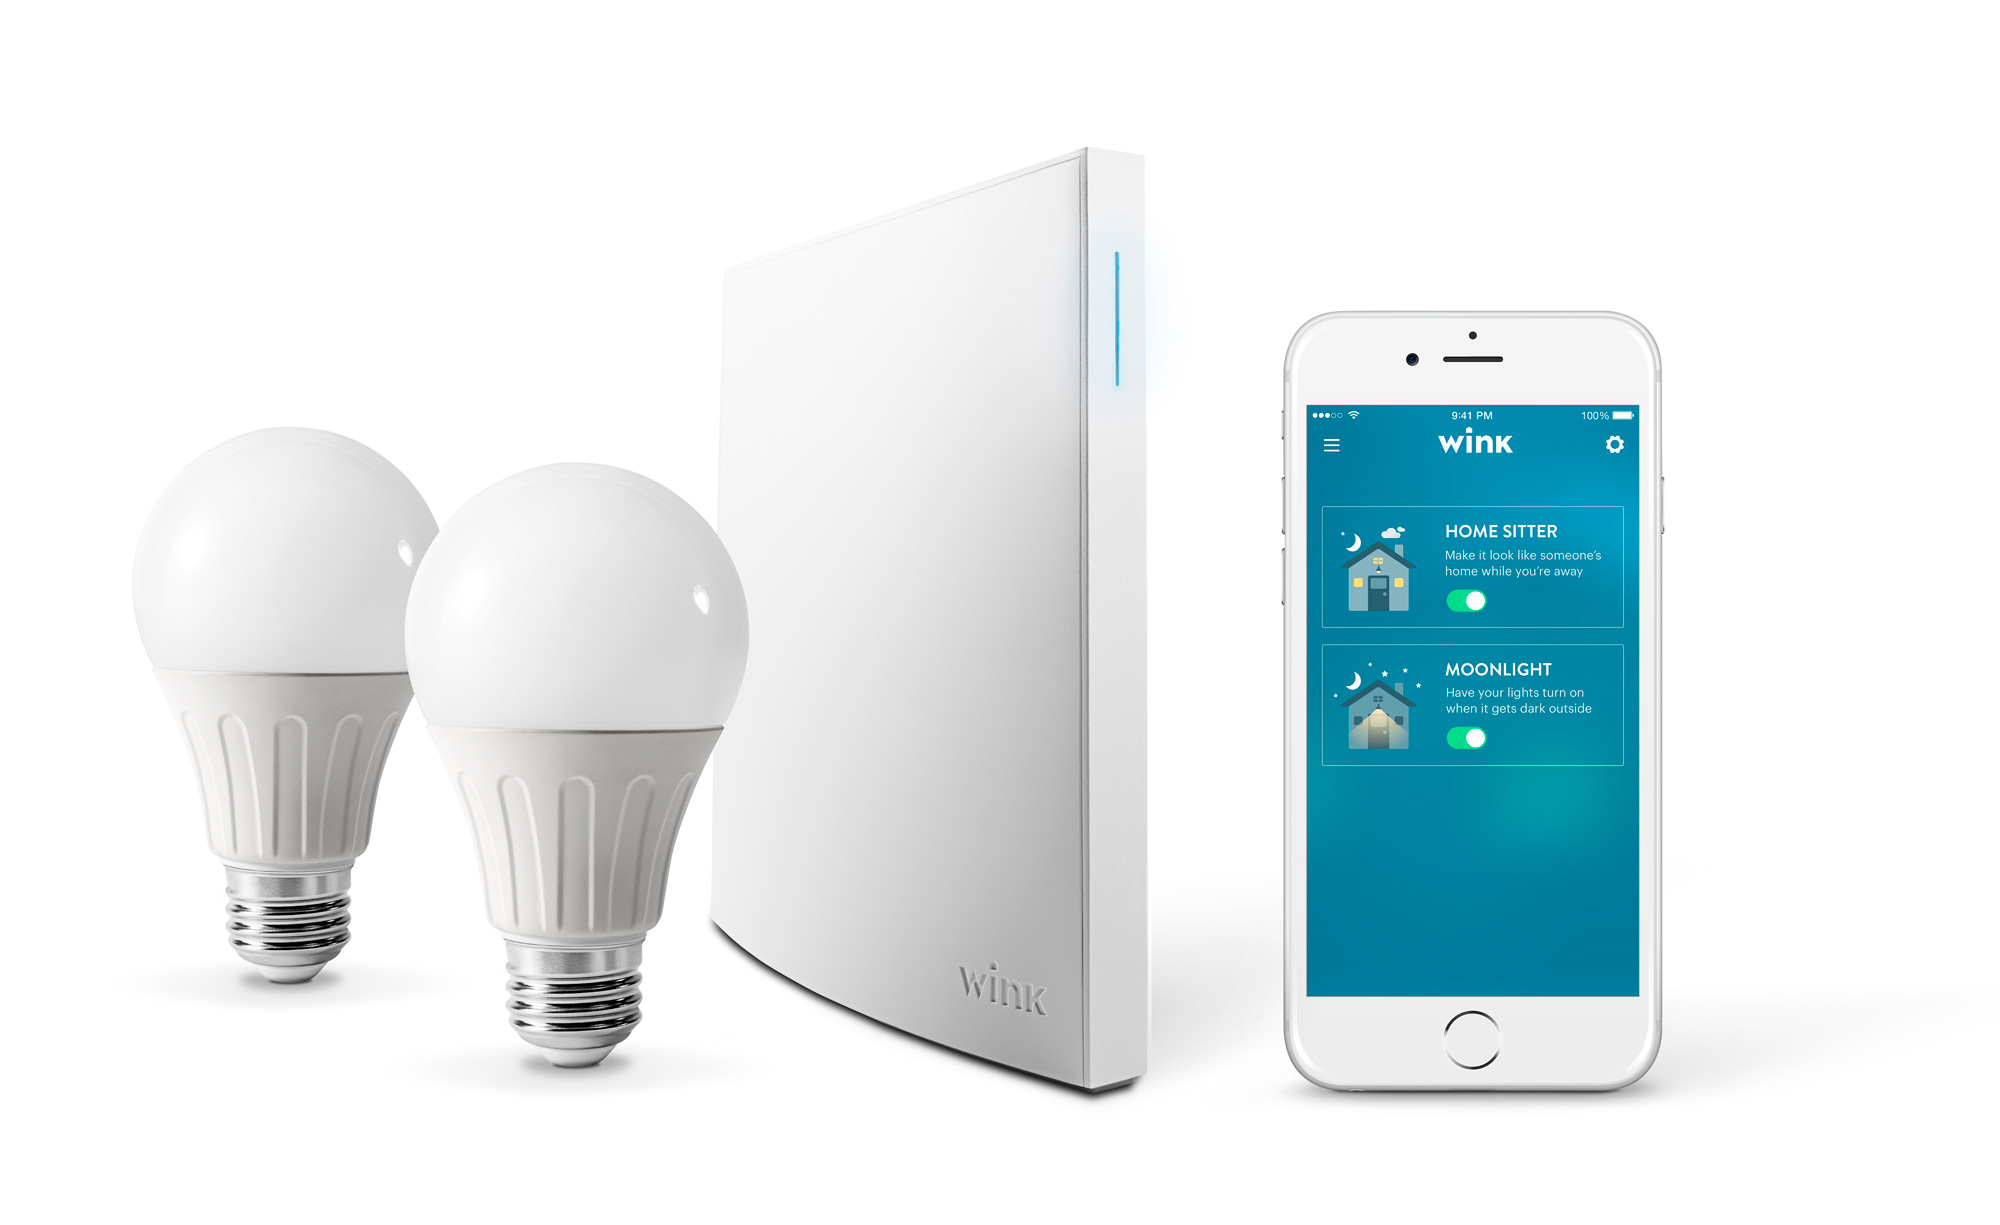 Wink Buy And View Smart Home Products